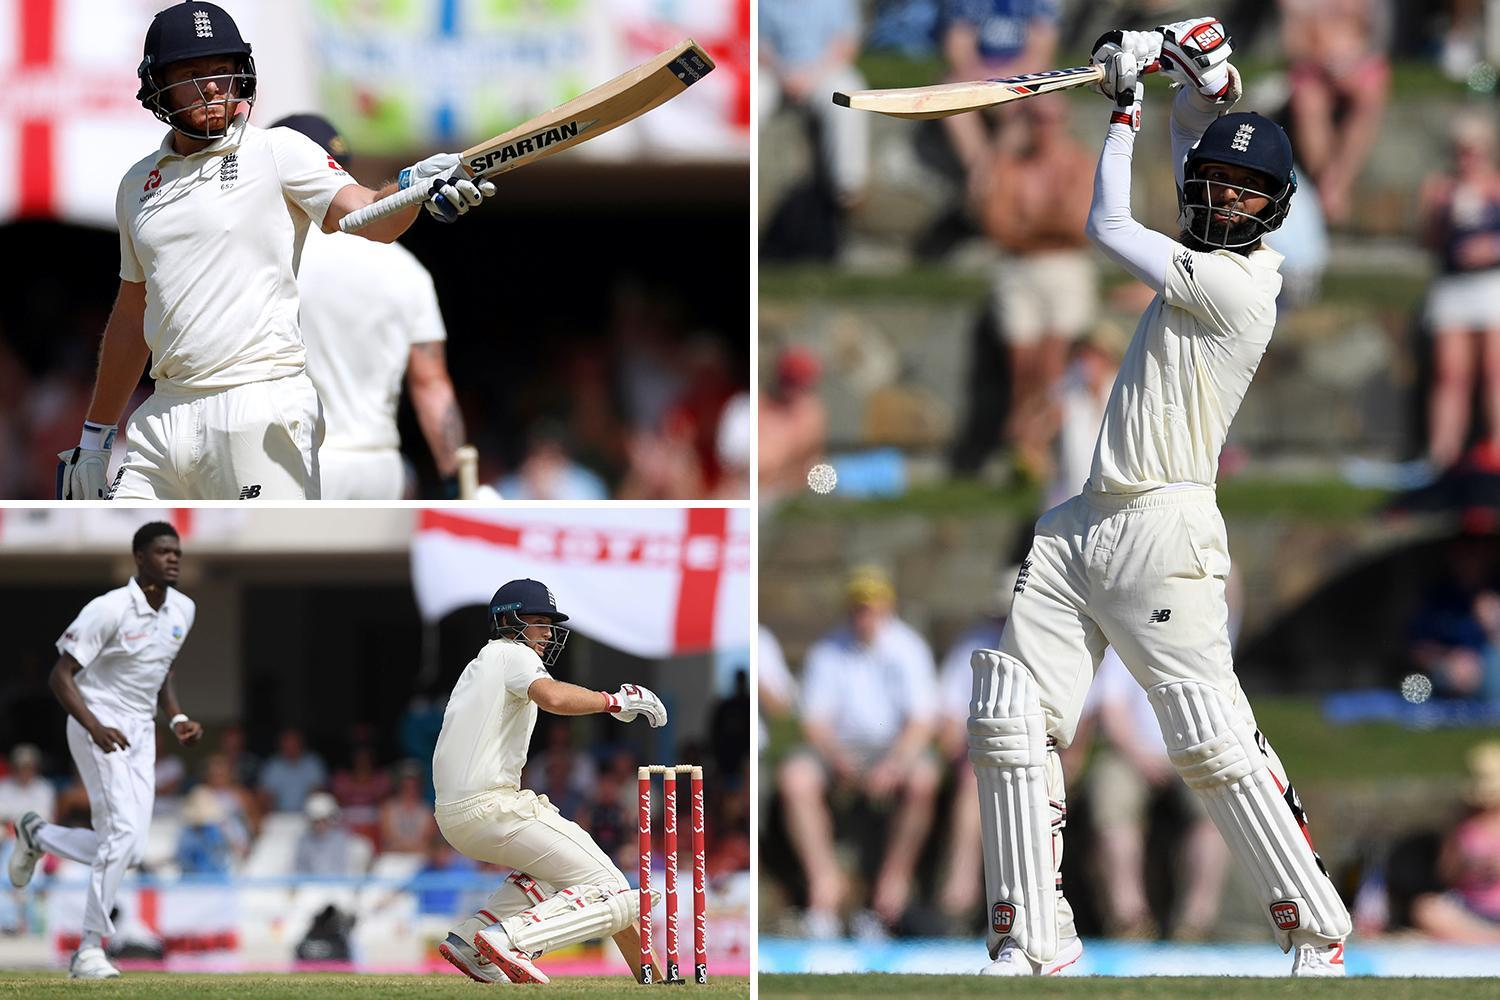 Moeen Ali and Jonny Bairstow rescue England after top order collapses again in West Indies